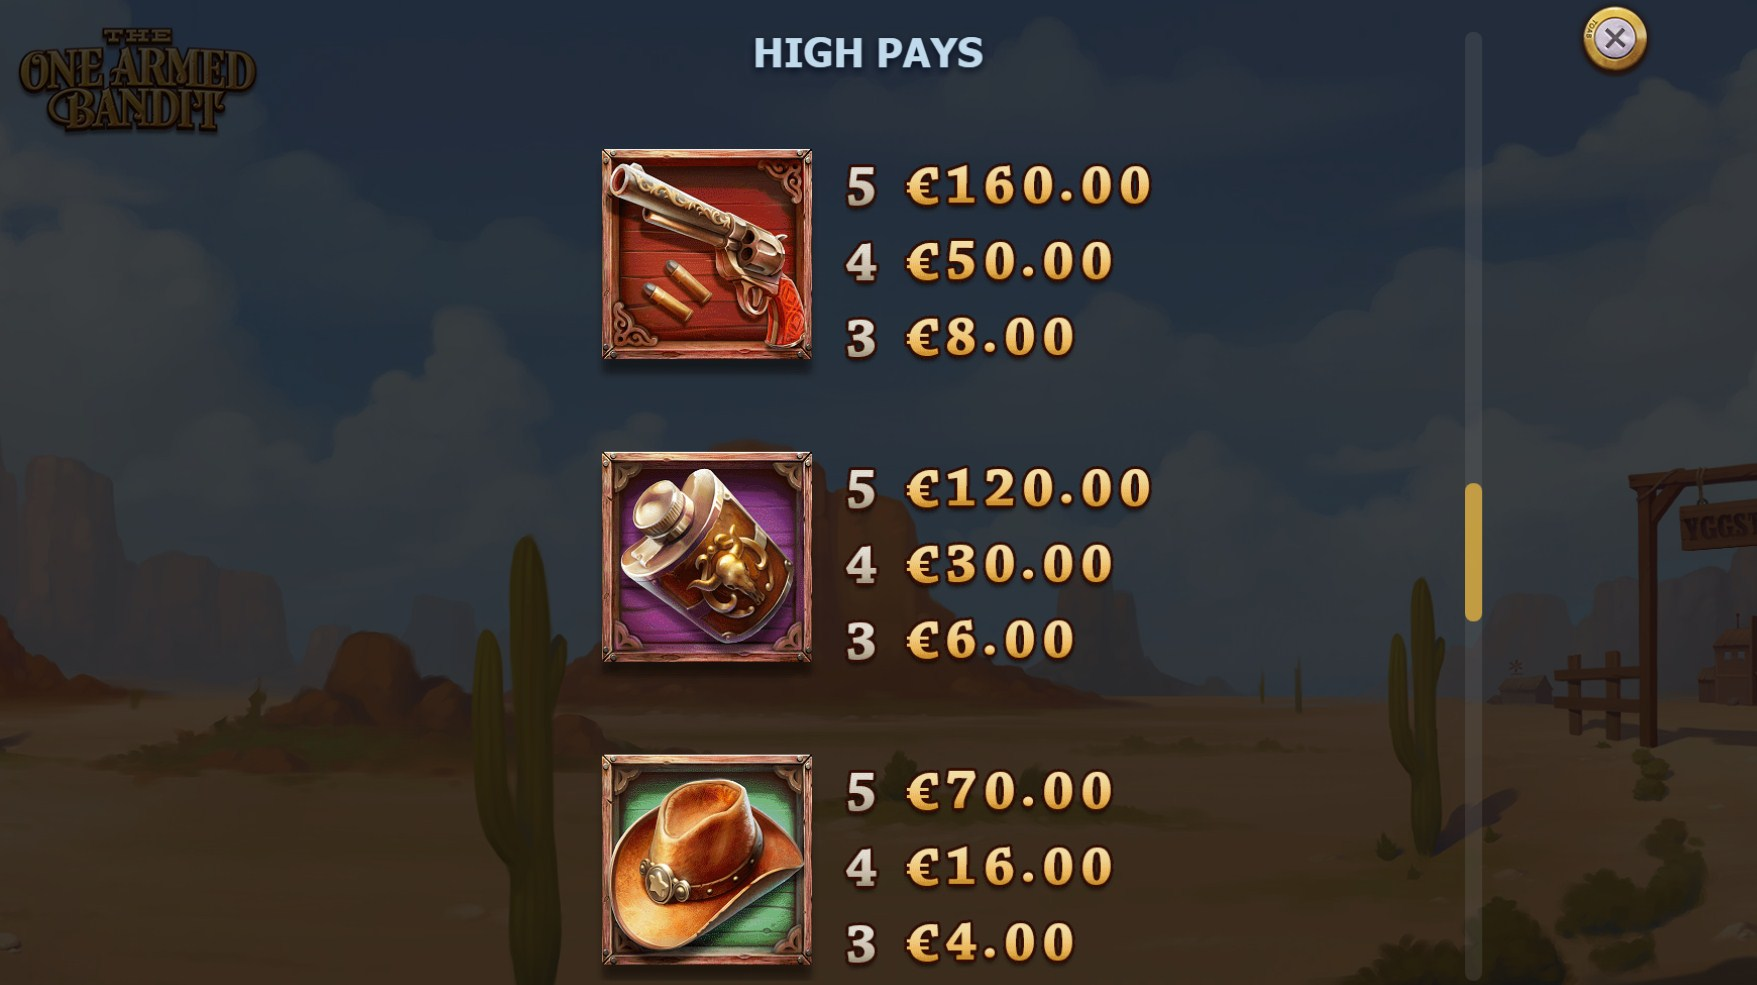 The One Armed Bandit Slot Paytable